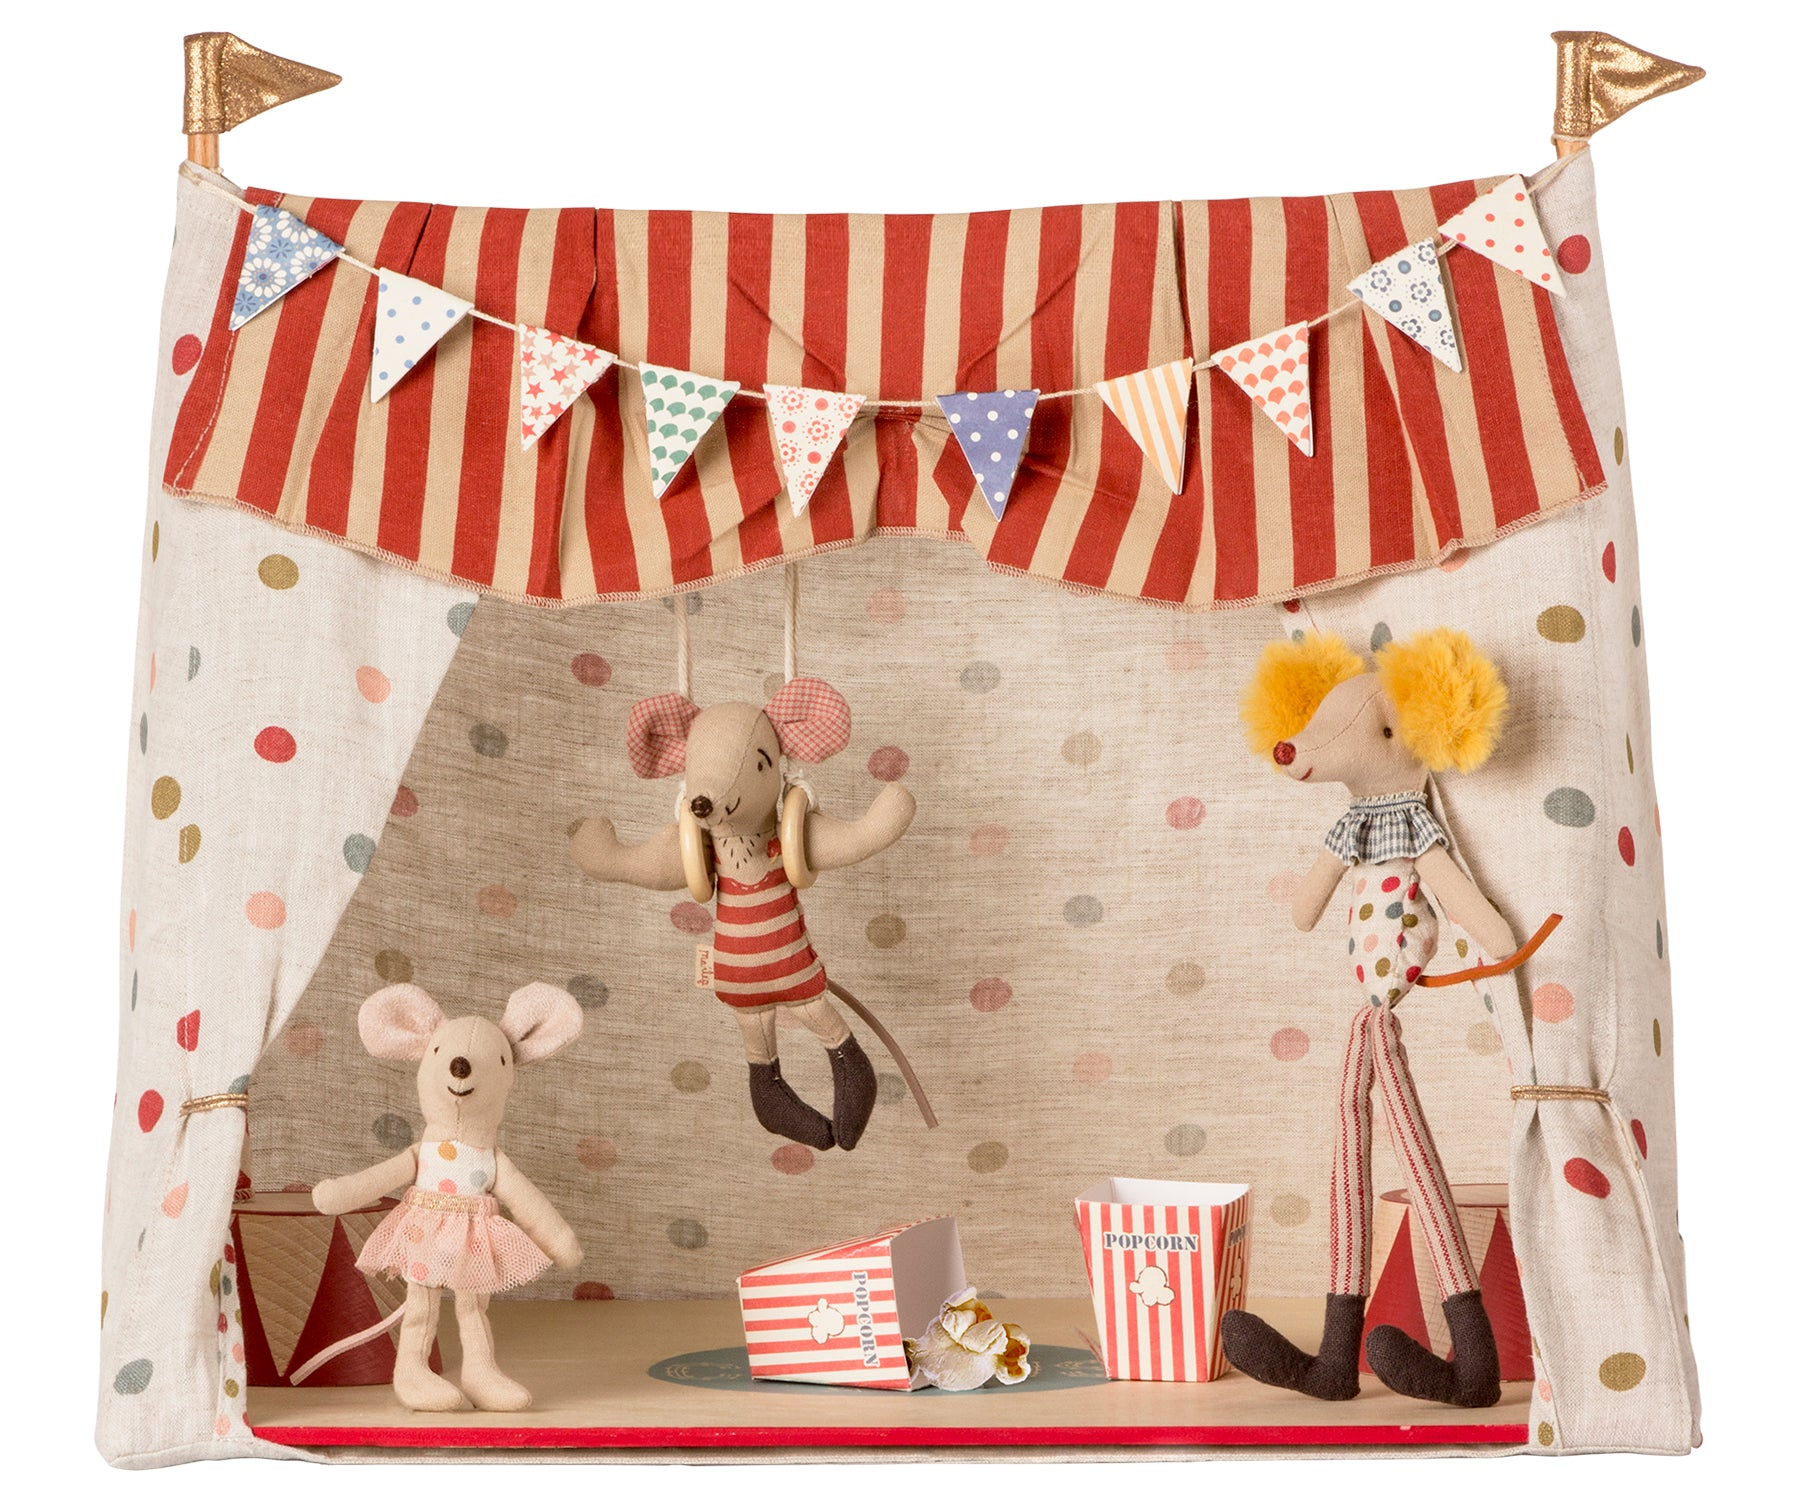 Circus Tent with 3 Mice